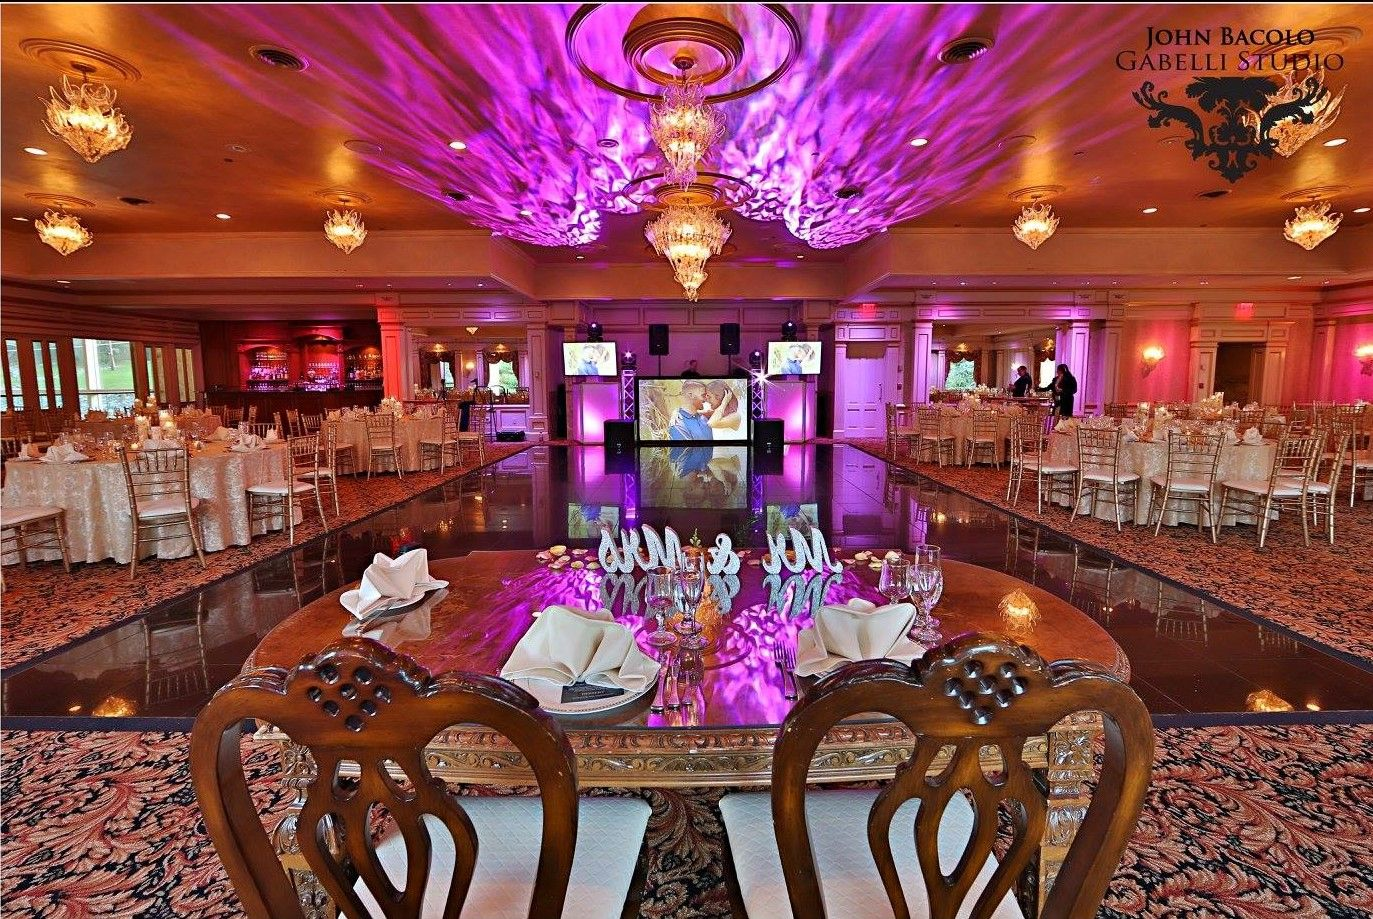 Explore The Most Grand Ballroom In All Of Northern Nj At Iltulipano Com And Start Planning Your Elegant Wedding